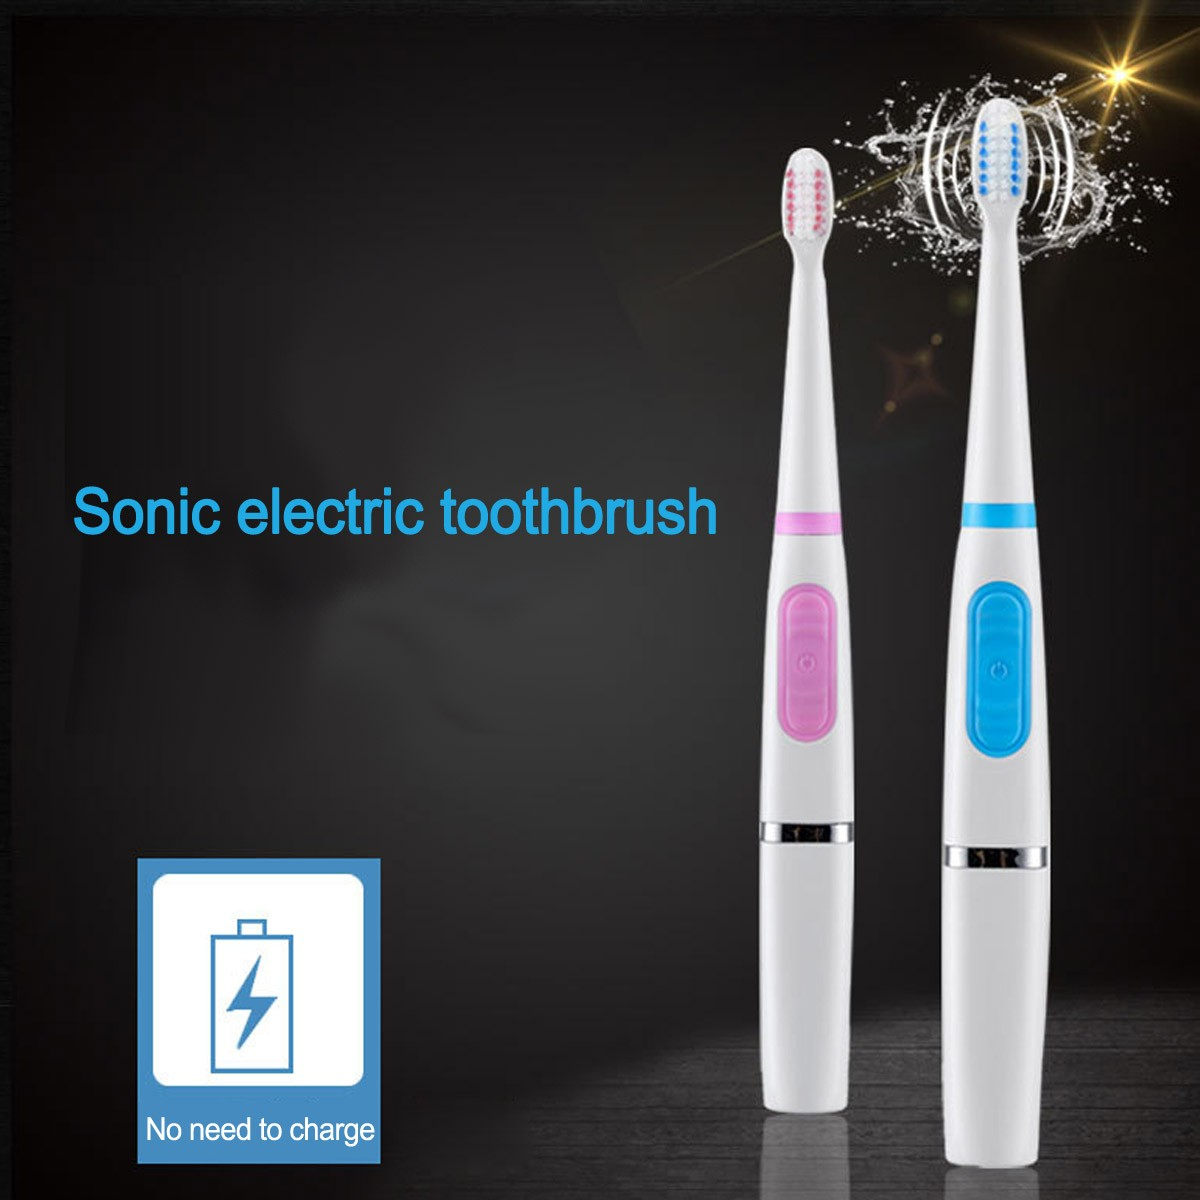 Dry Battery Powered Electric Sonic Toothbrush, Portable Waterproof Teeth Whitening Toothbrush For Children Adults image